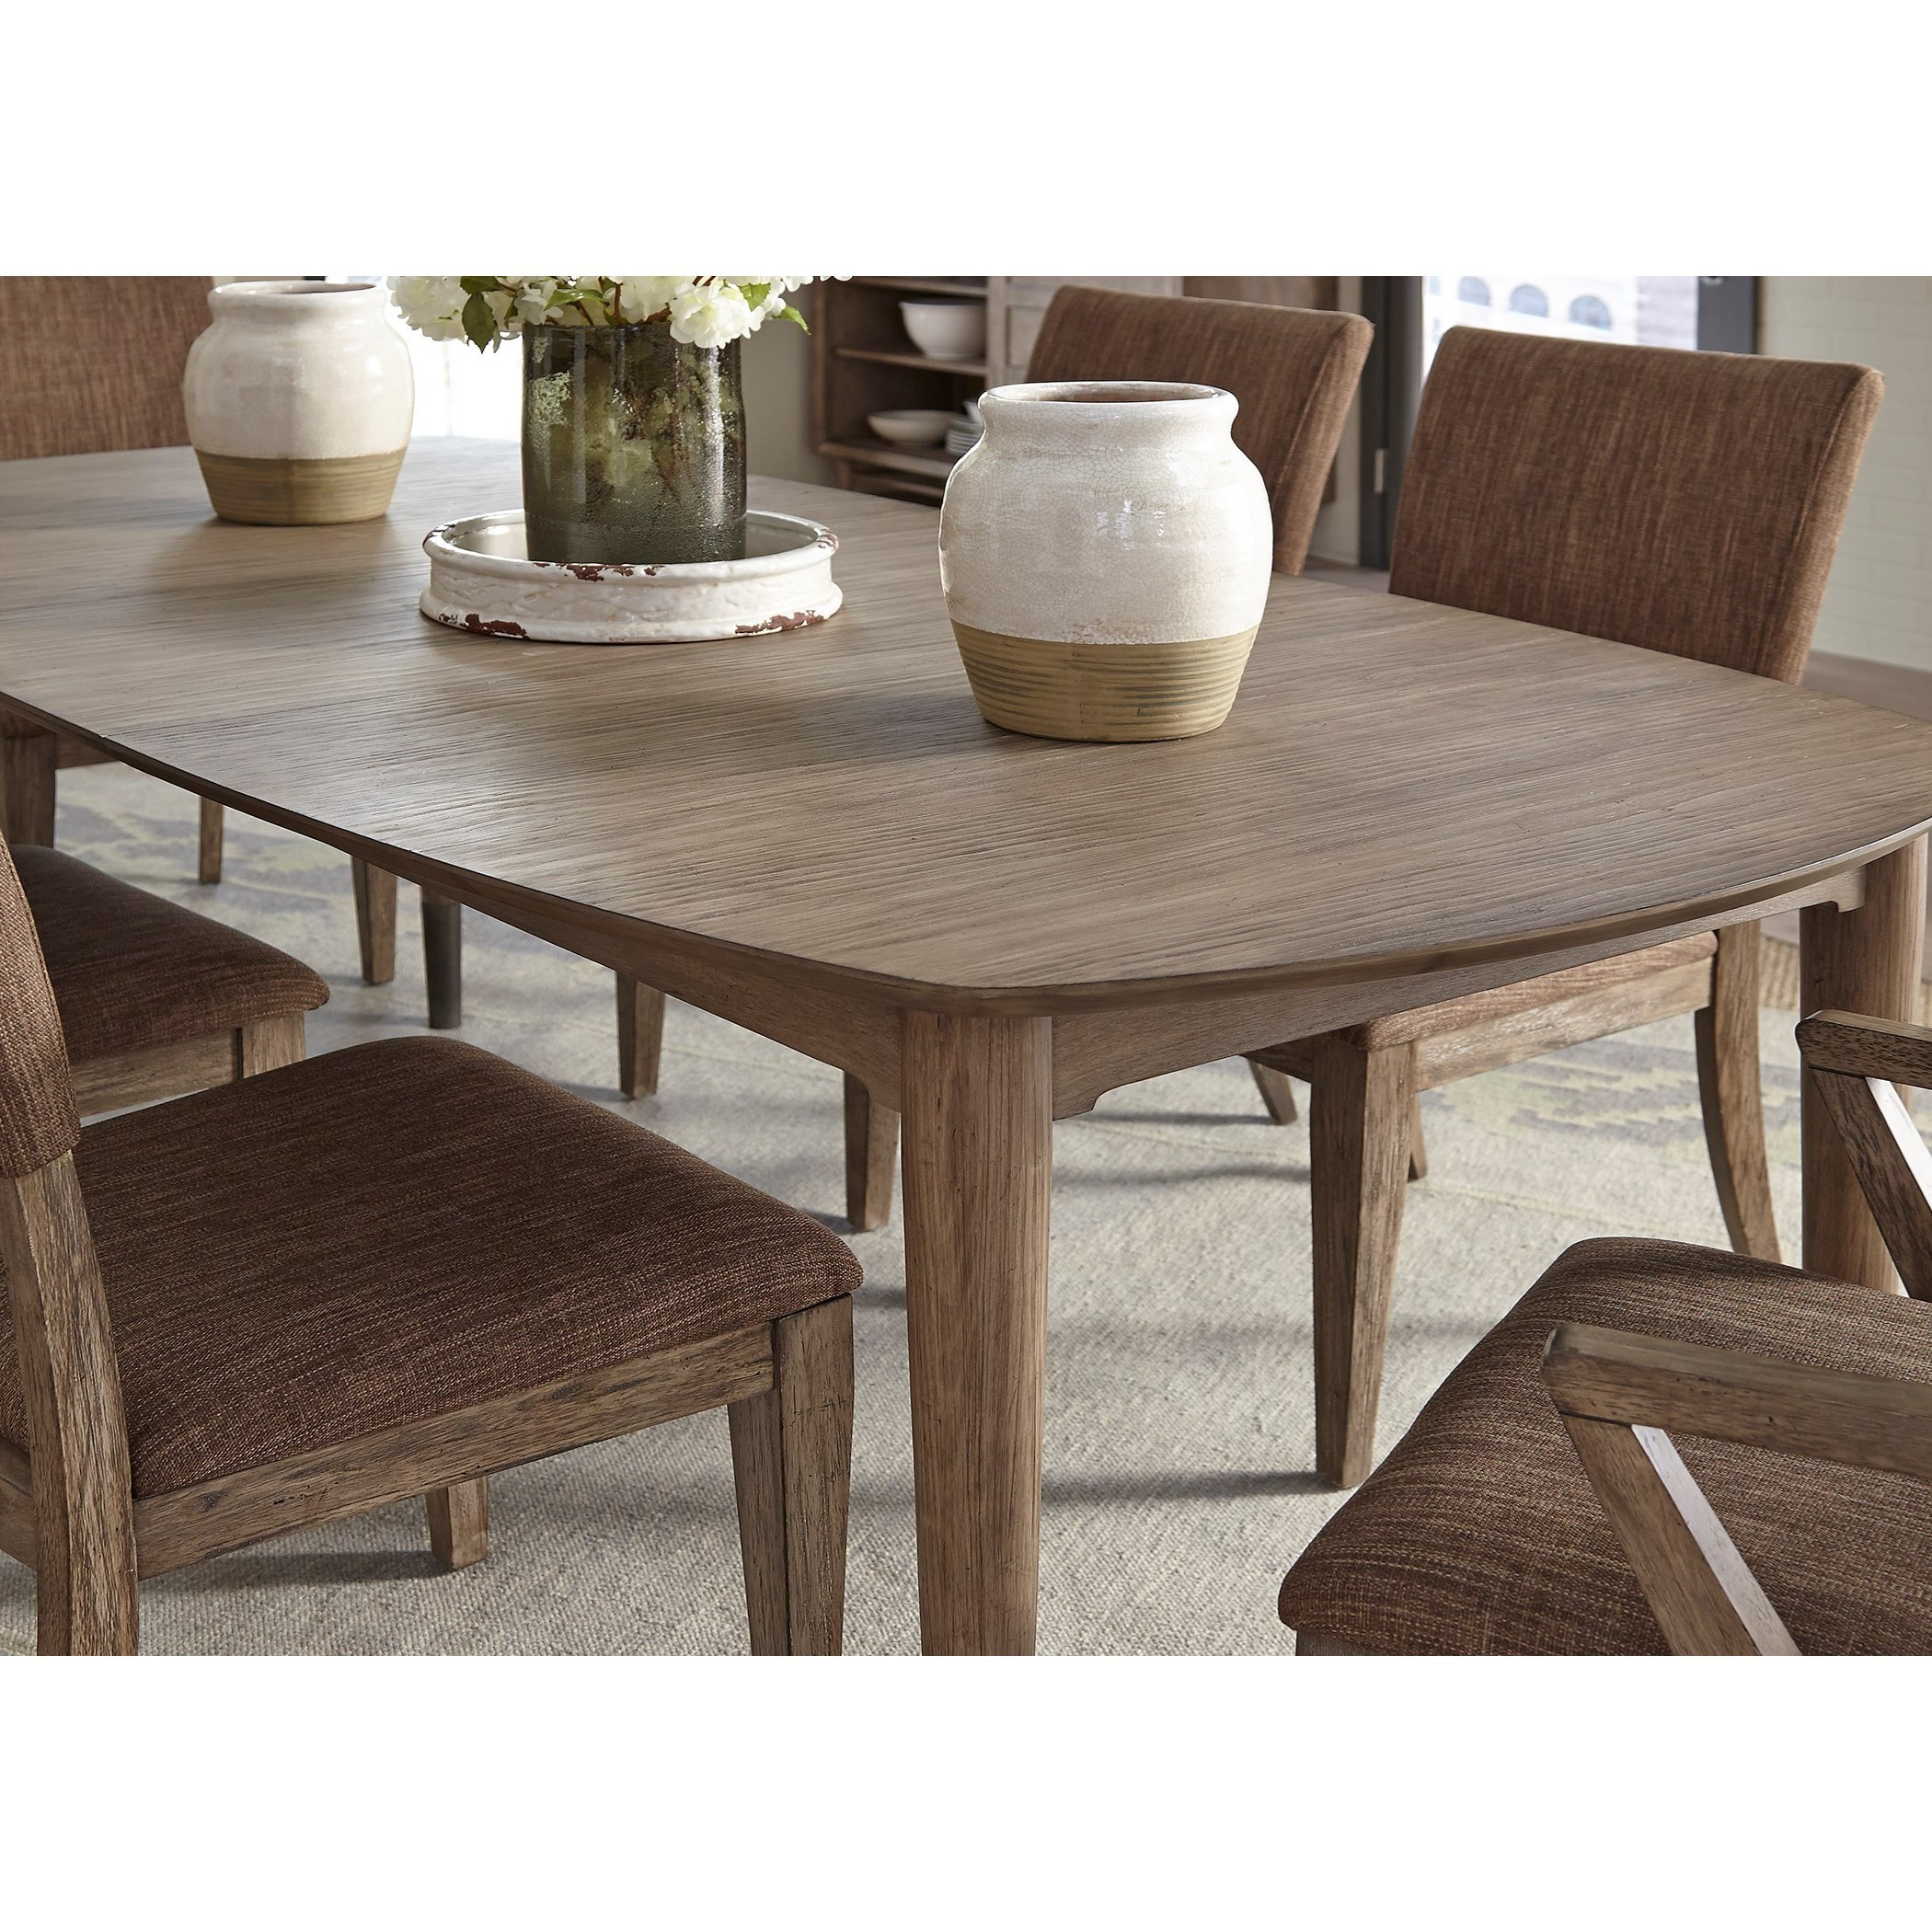 Charming Miramar Oval Leg Table With Leaf By Liberty Furniture